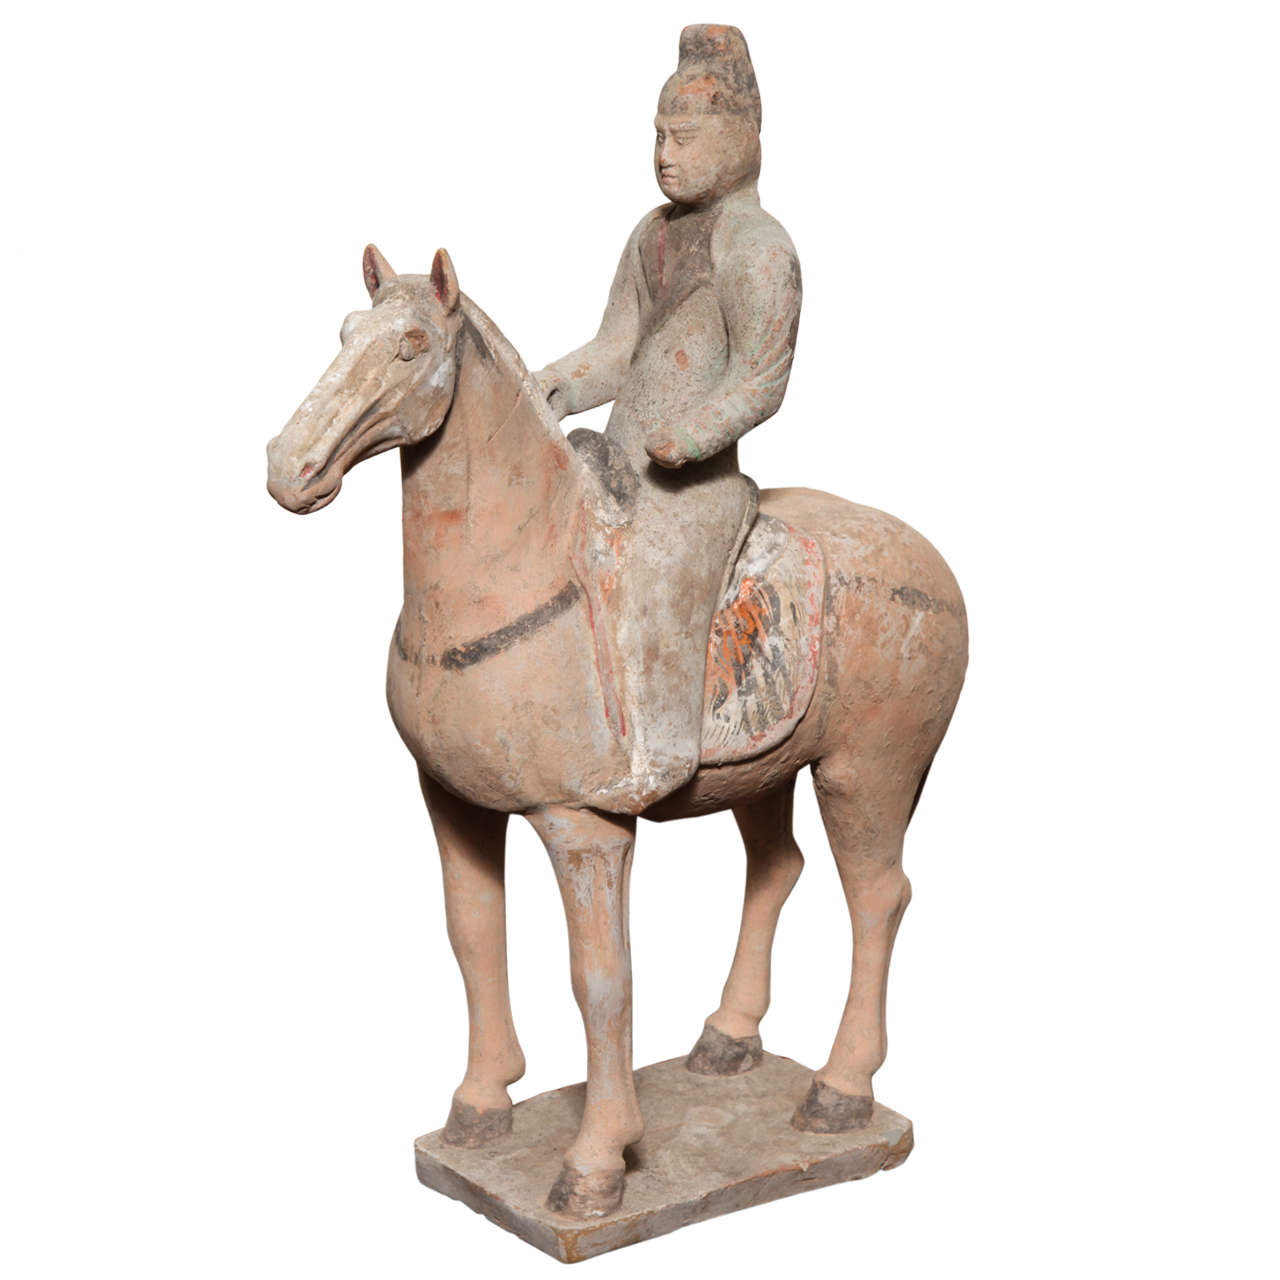 7th 10th Century Tang Dynasty Terracotta Statuette Of A Horse With Rider For